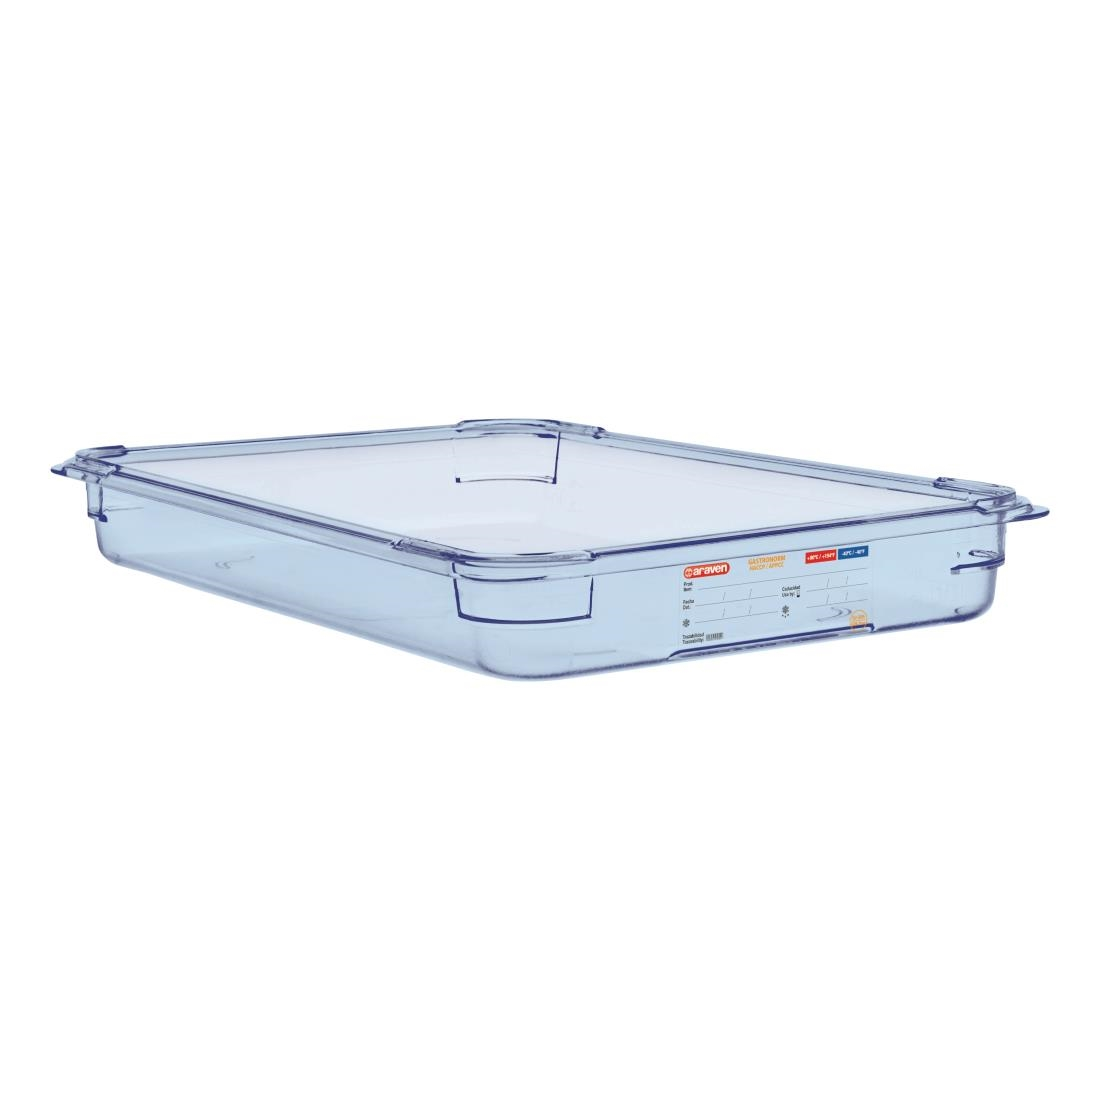 Image of Araven ABS Food Storage Container Blue GN 1/1 65mm